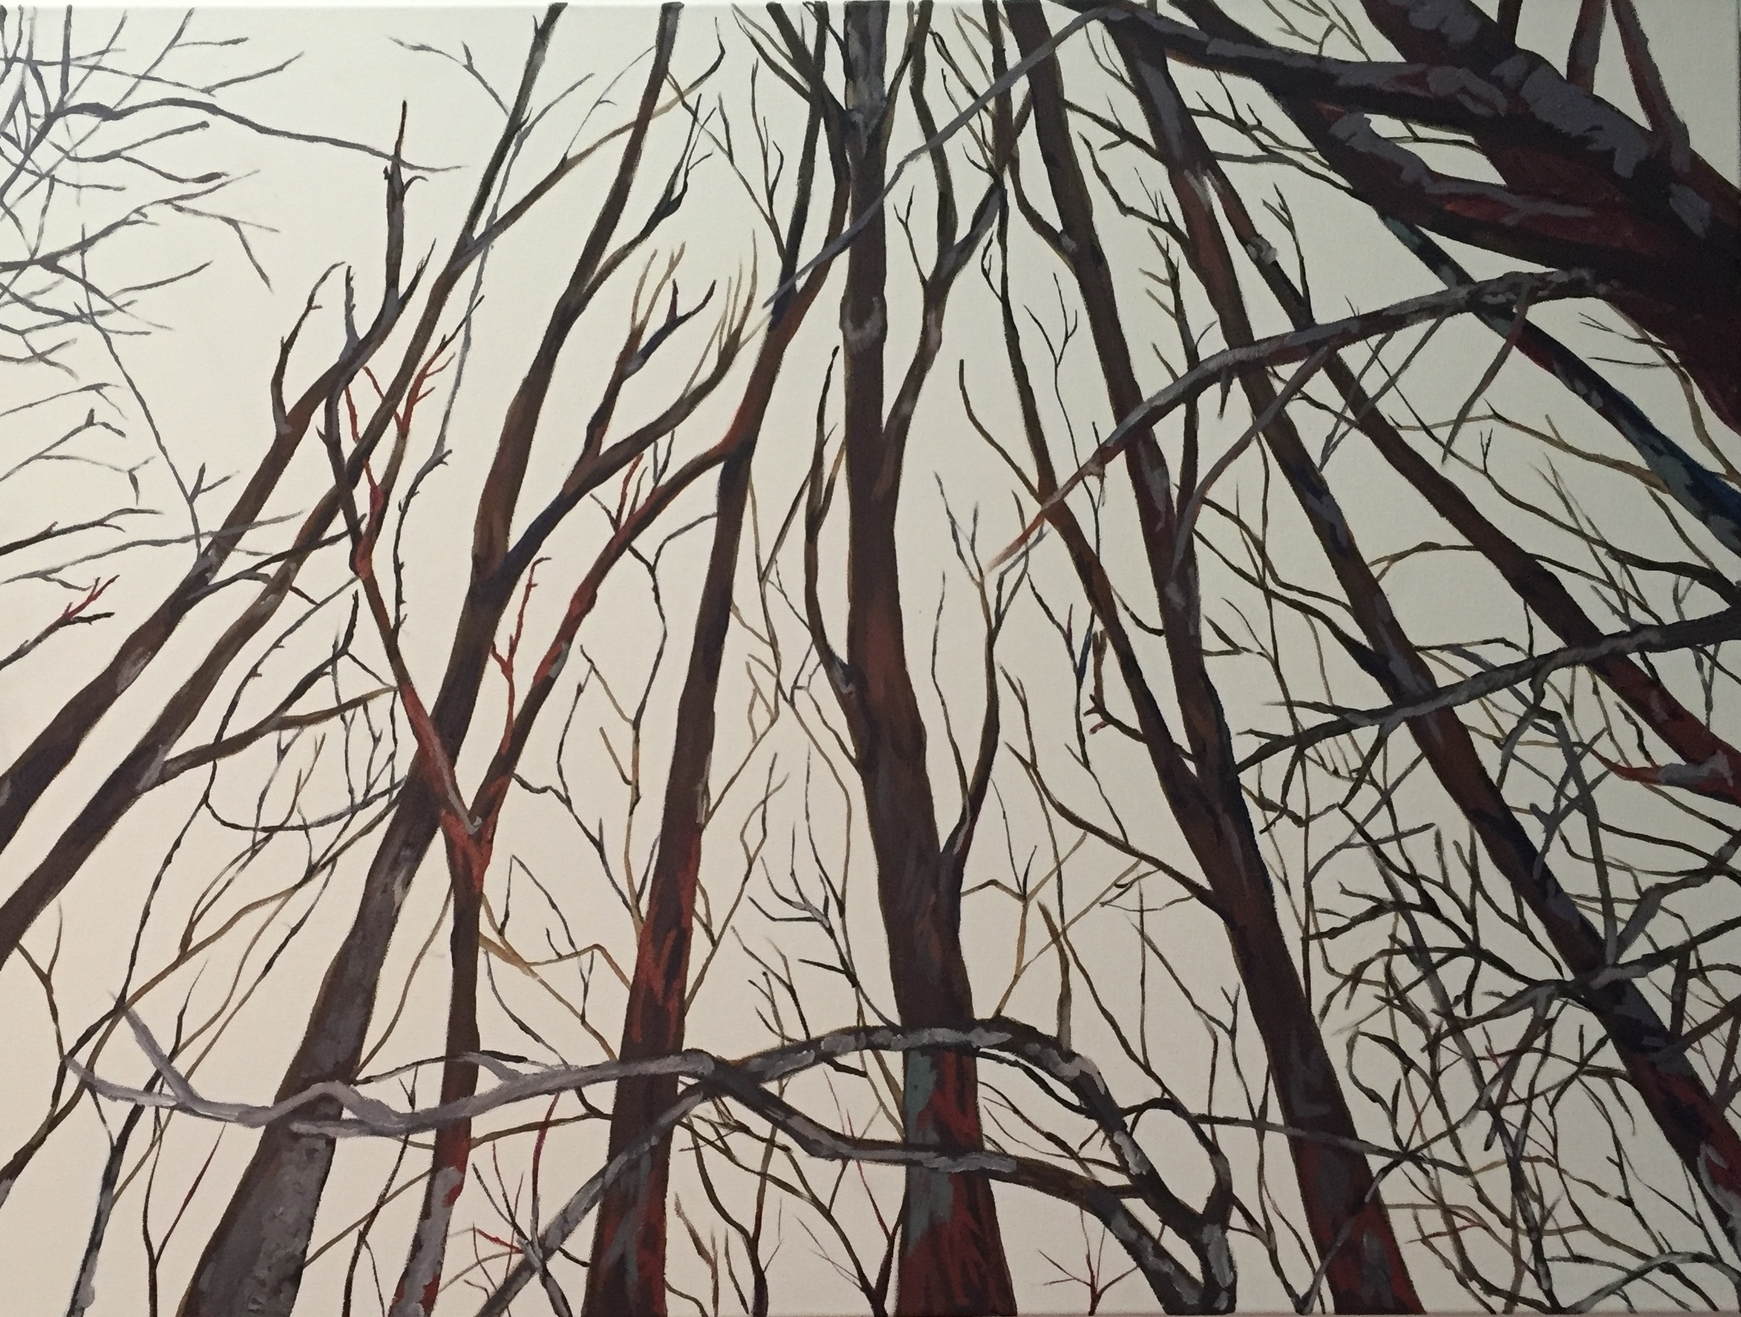 A celebration of Loneliness - Acrylic on Canvass.  2.5'x3.3' SOLD